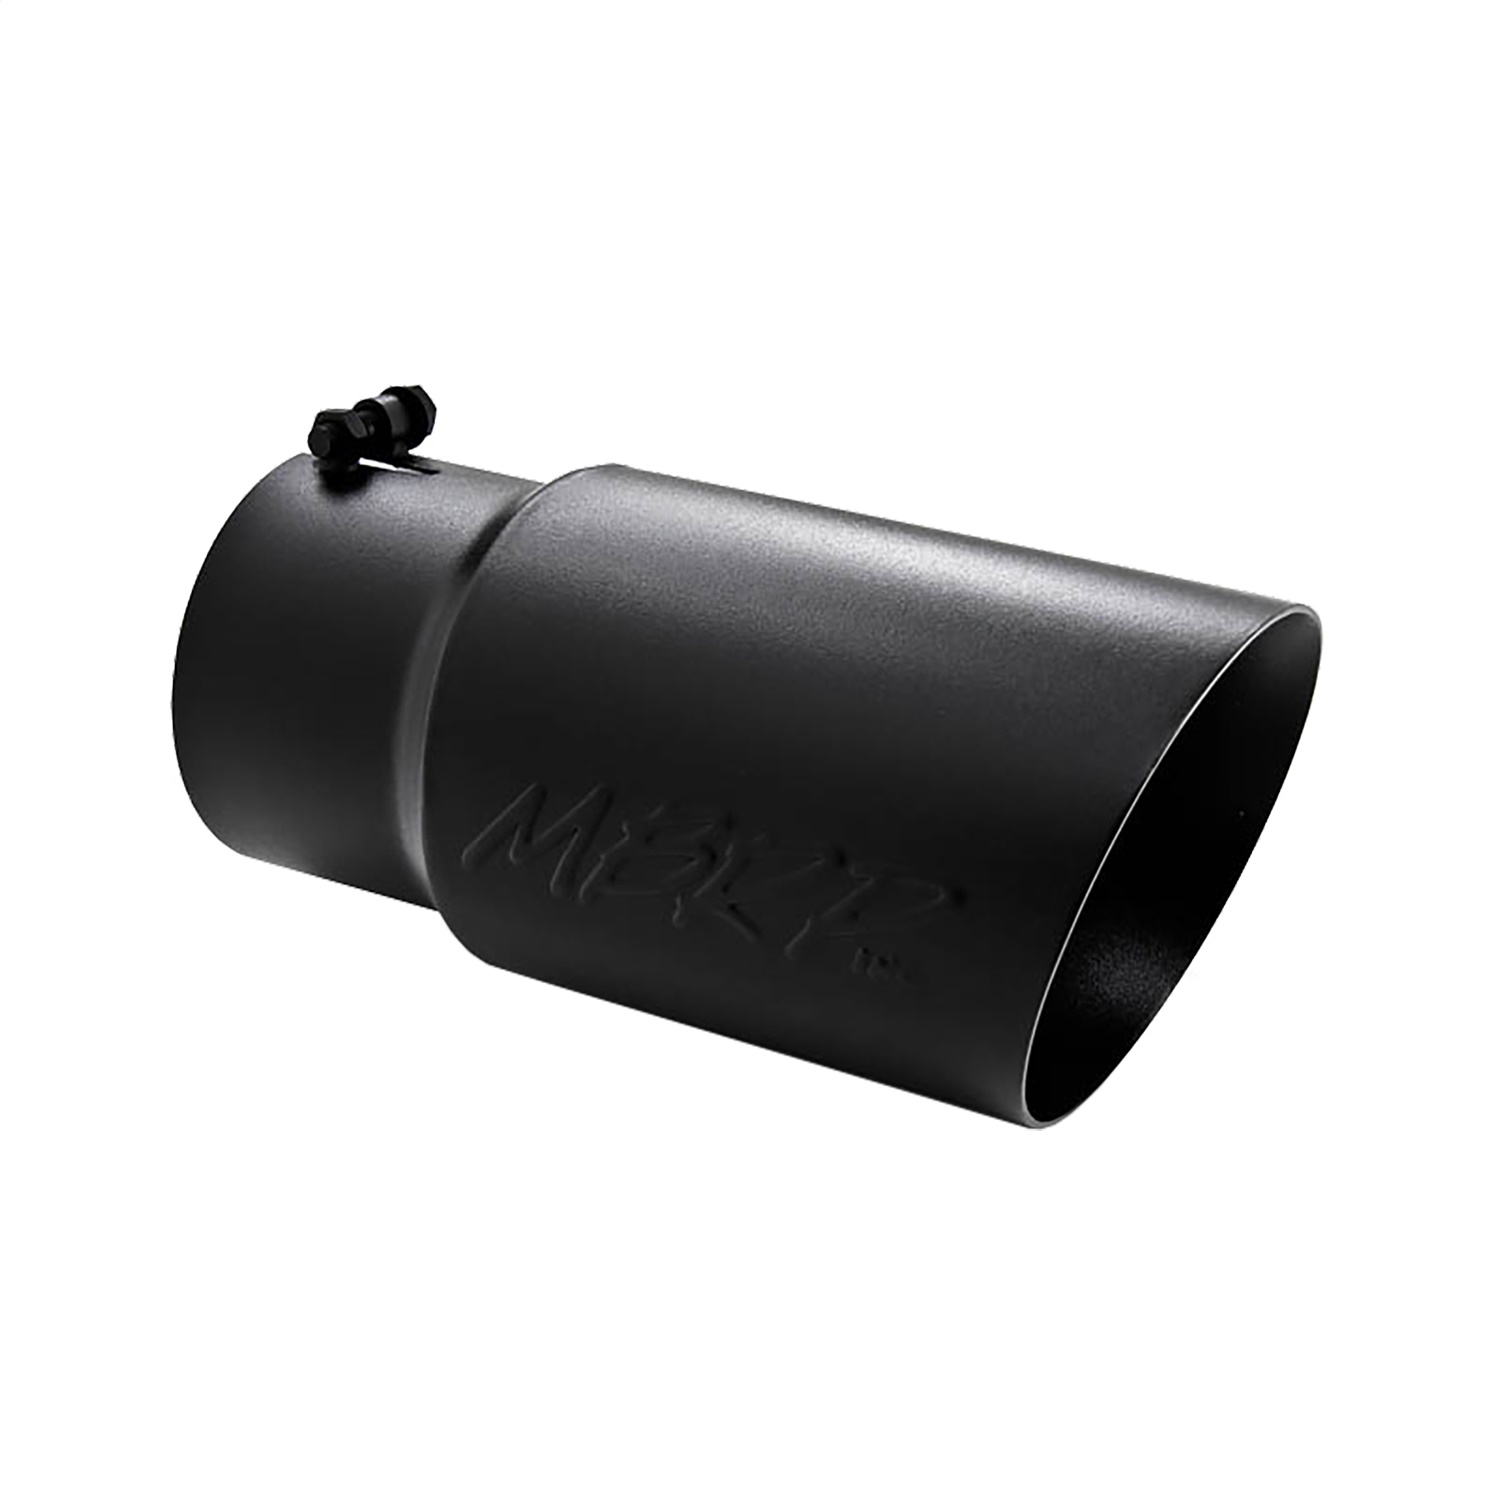 MBRP Exhaust Exhaust Tail Pipe Tip (T5074BLK)